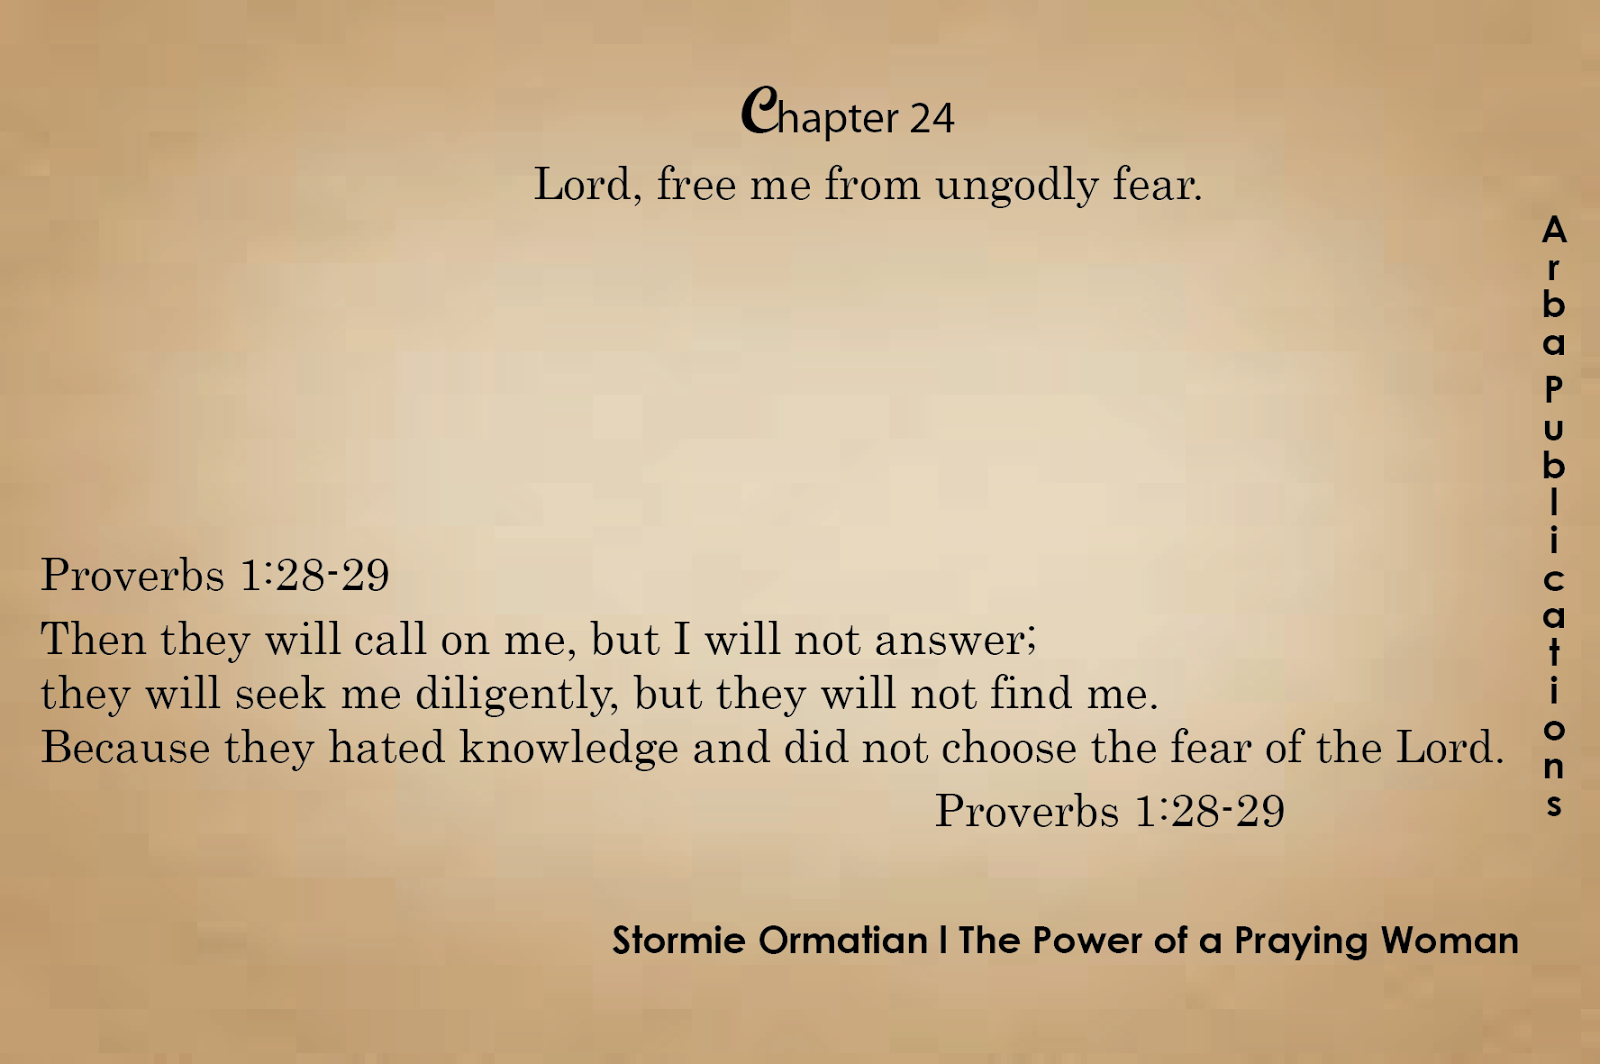 ARBA Publications: # Chapter 24: Lord, free me from ungodly